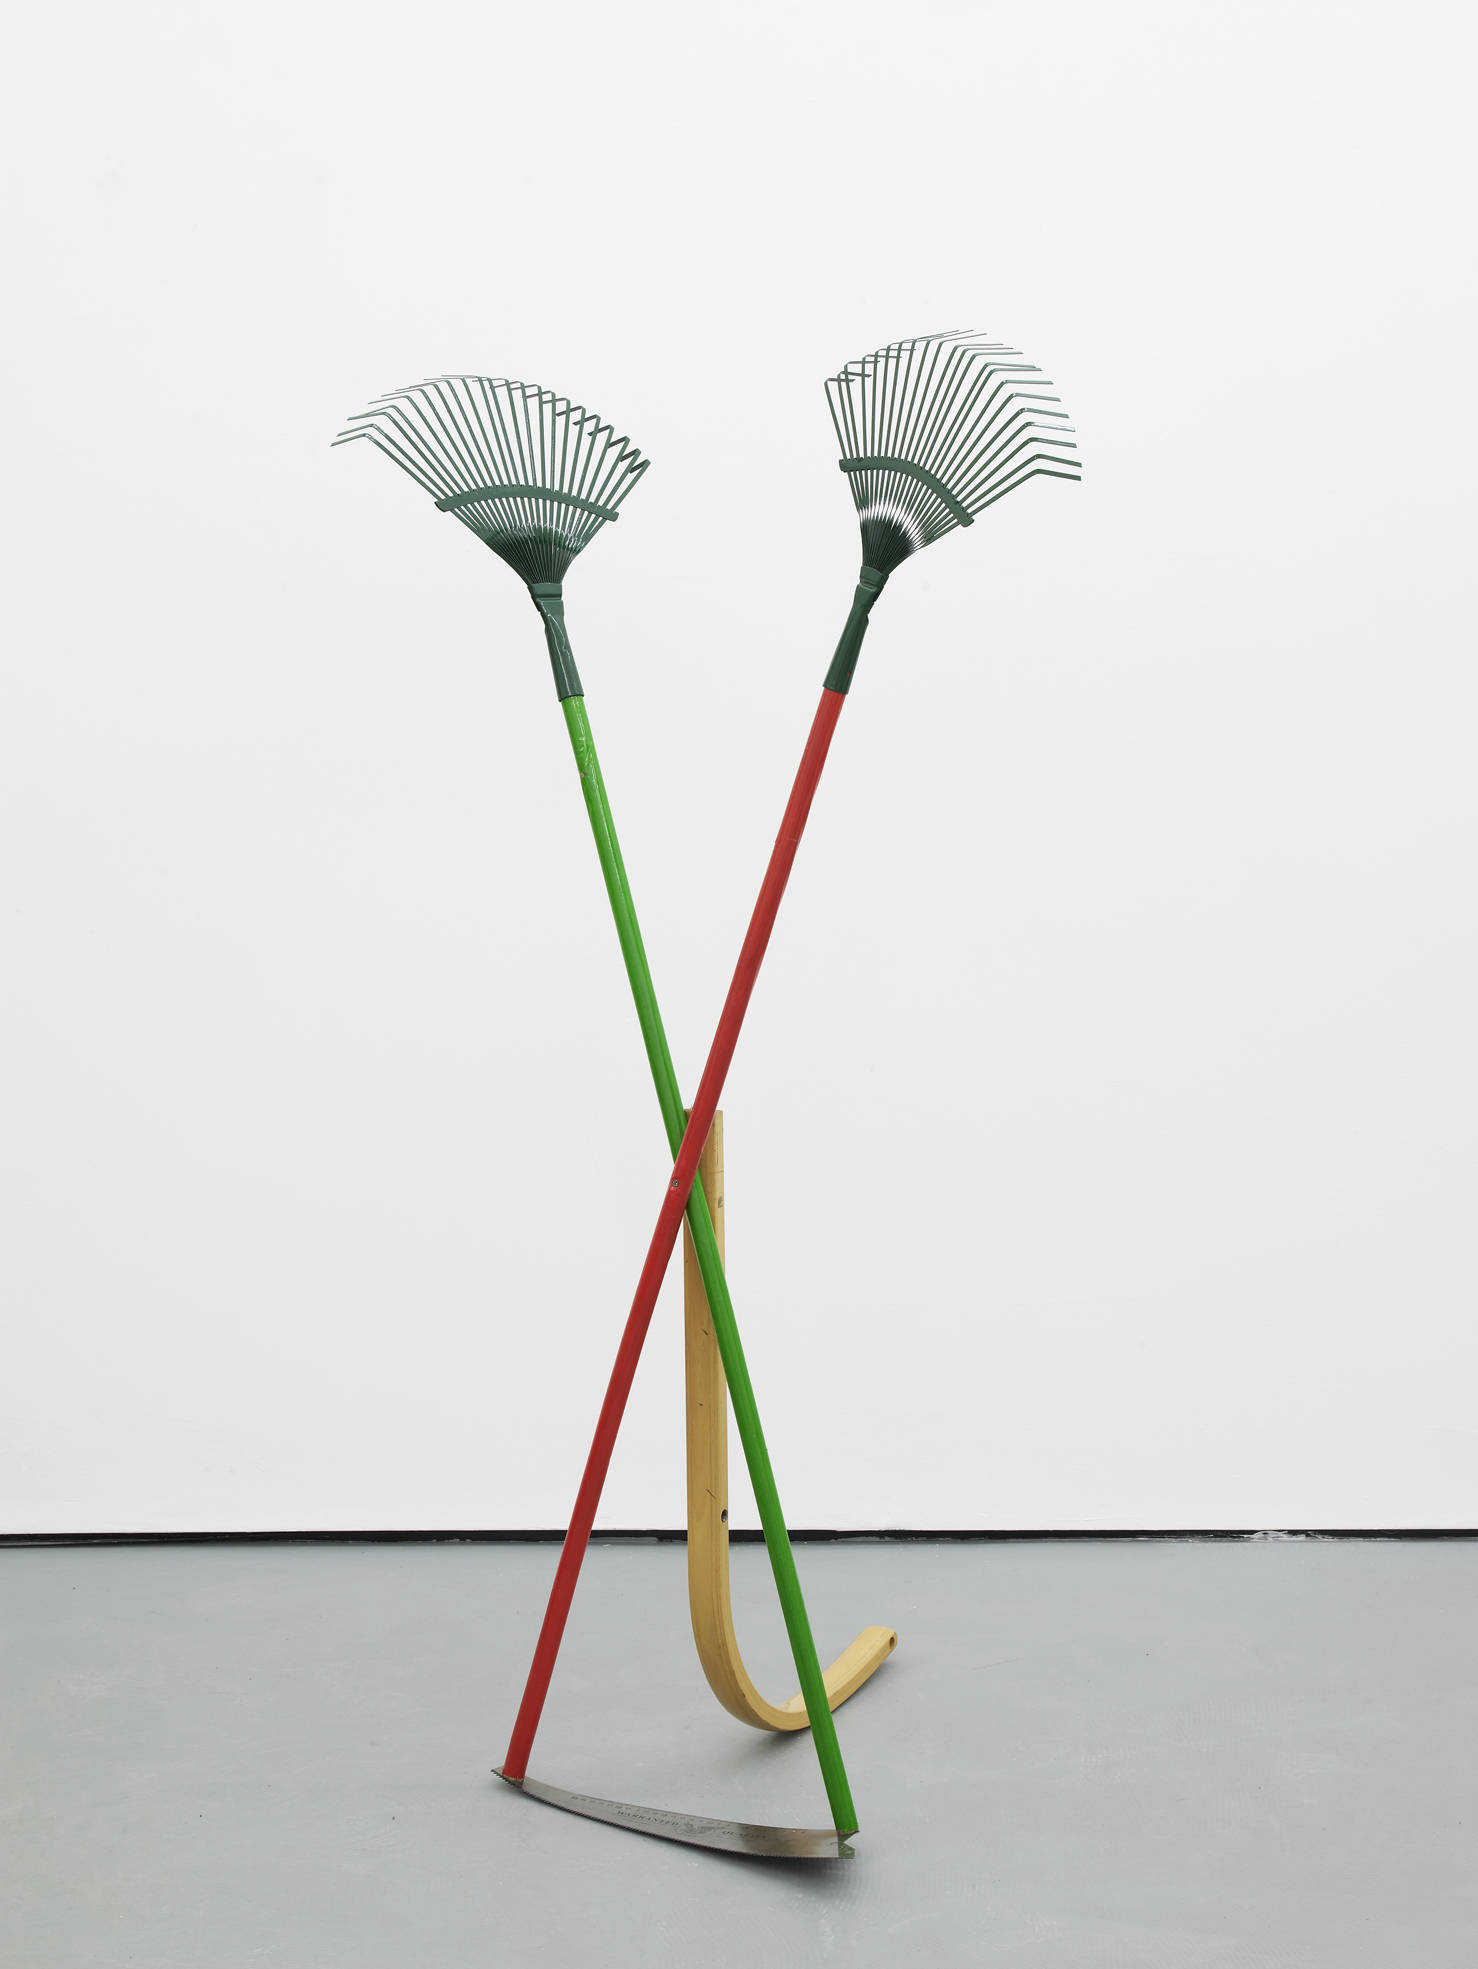 Catachresis ♯62  Teeth of the rakes, arm of the chair, teeth of the saw and eye of the needle 2016 Found materials 143 x 77 x 65 cm / 56.3 x 30.3 x 25.6 in